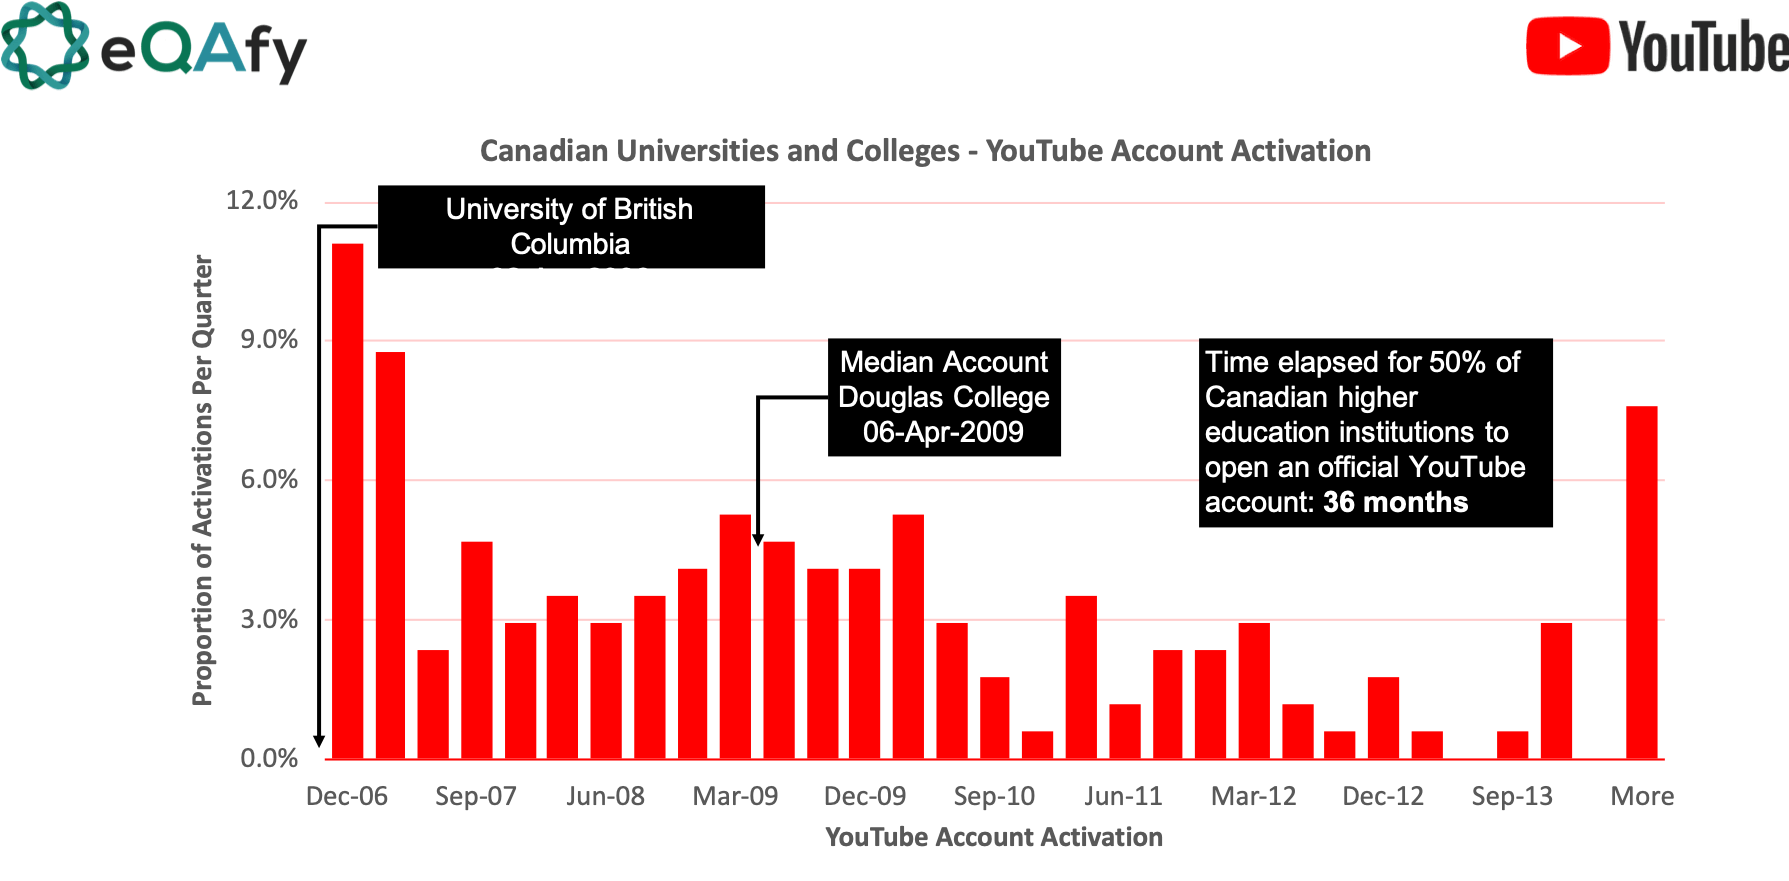 Dates of YouTube account activation higher education/post-secondary institutions in Canada